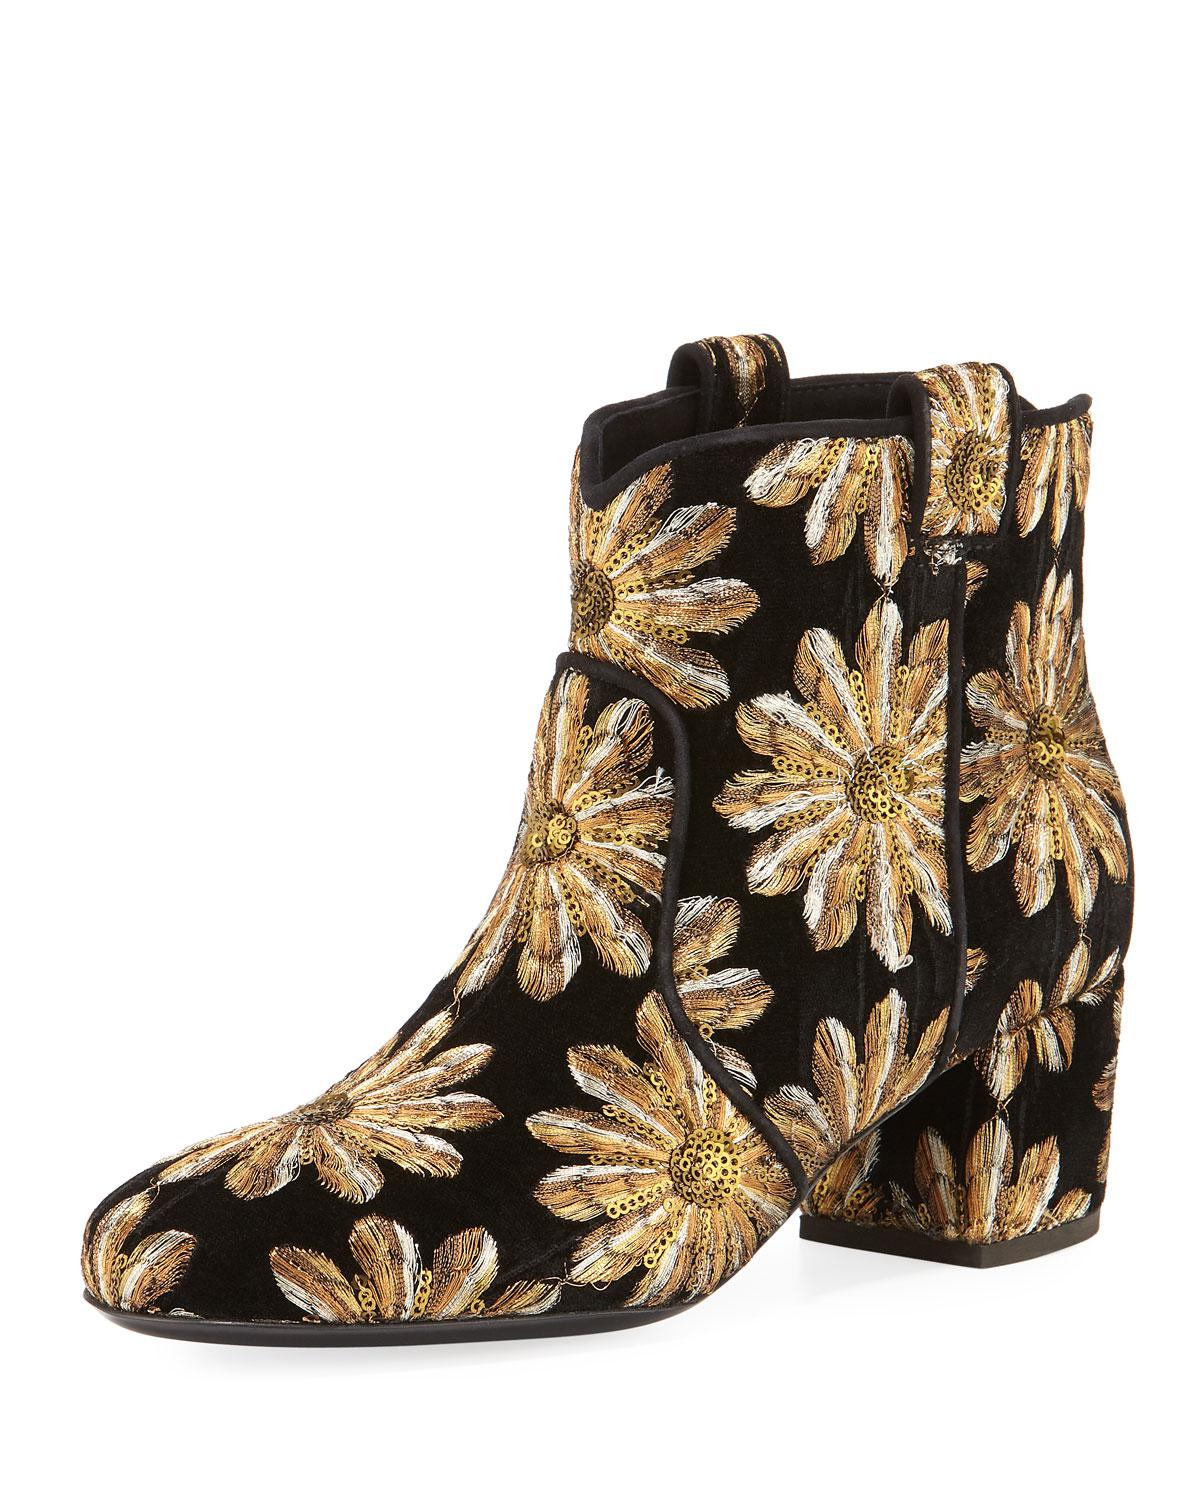 LAURENCE DACADE Sequin embellished boots